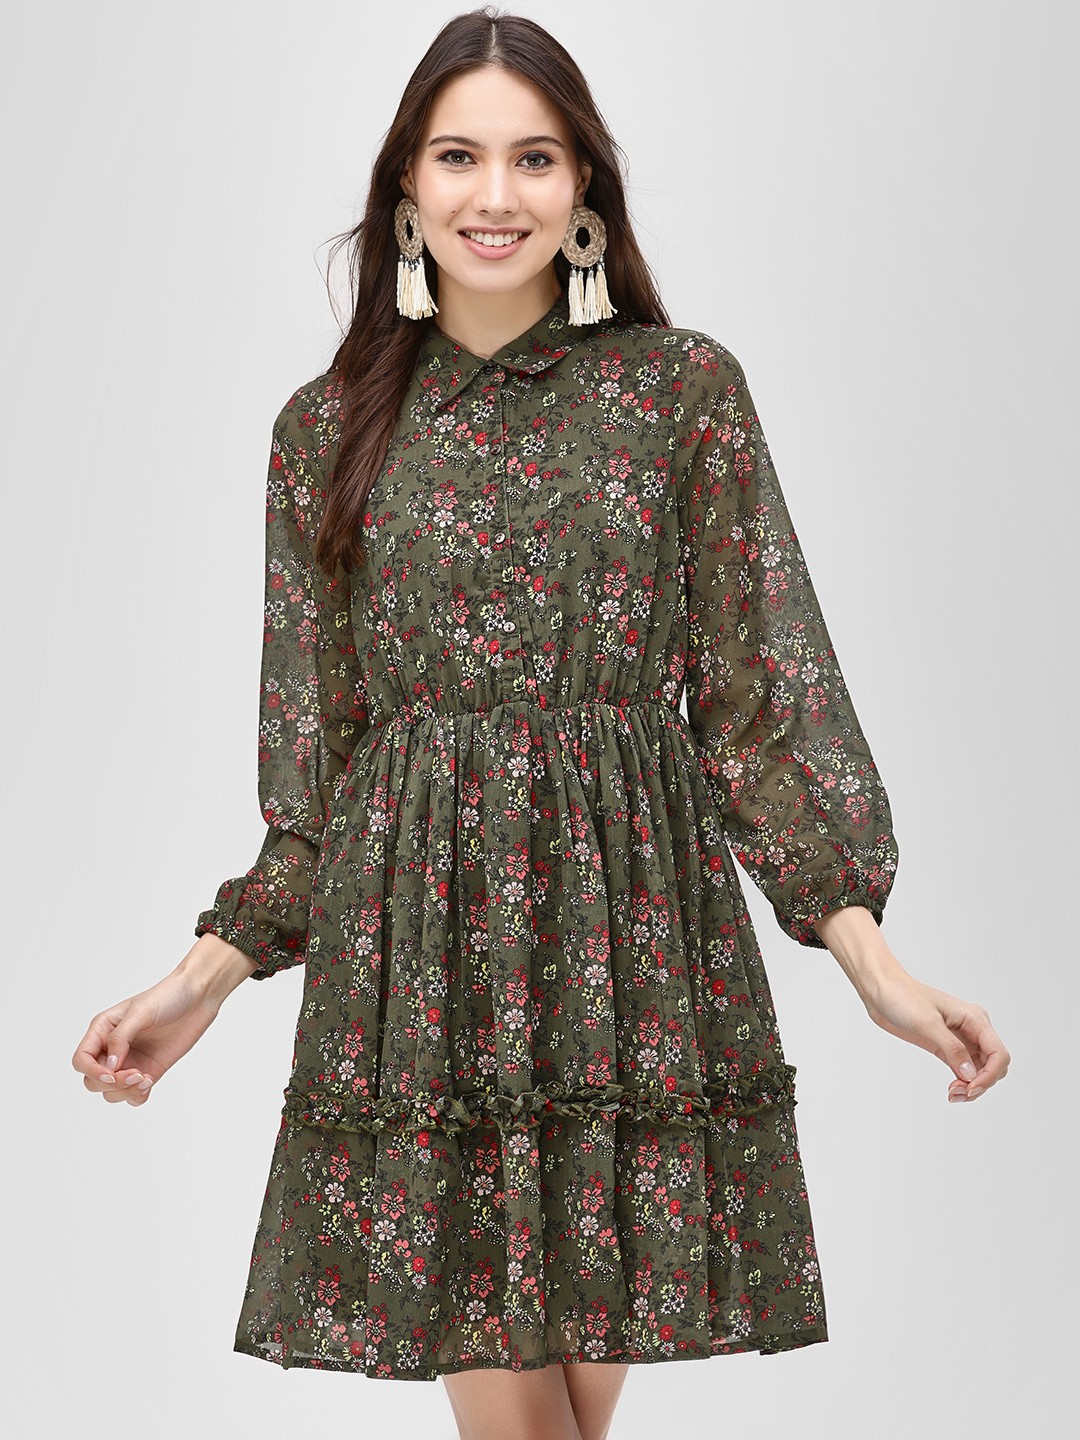 Vero Moda Green Floral Balloon Sleeve Shift Dress 1